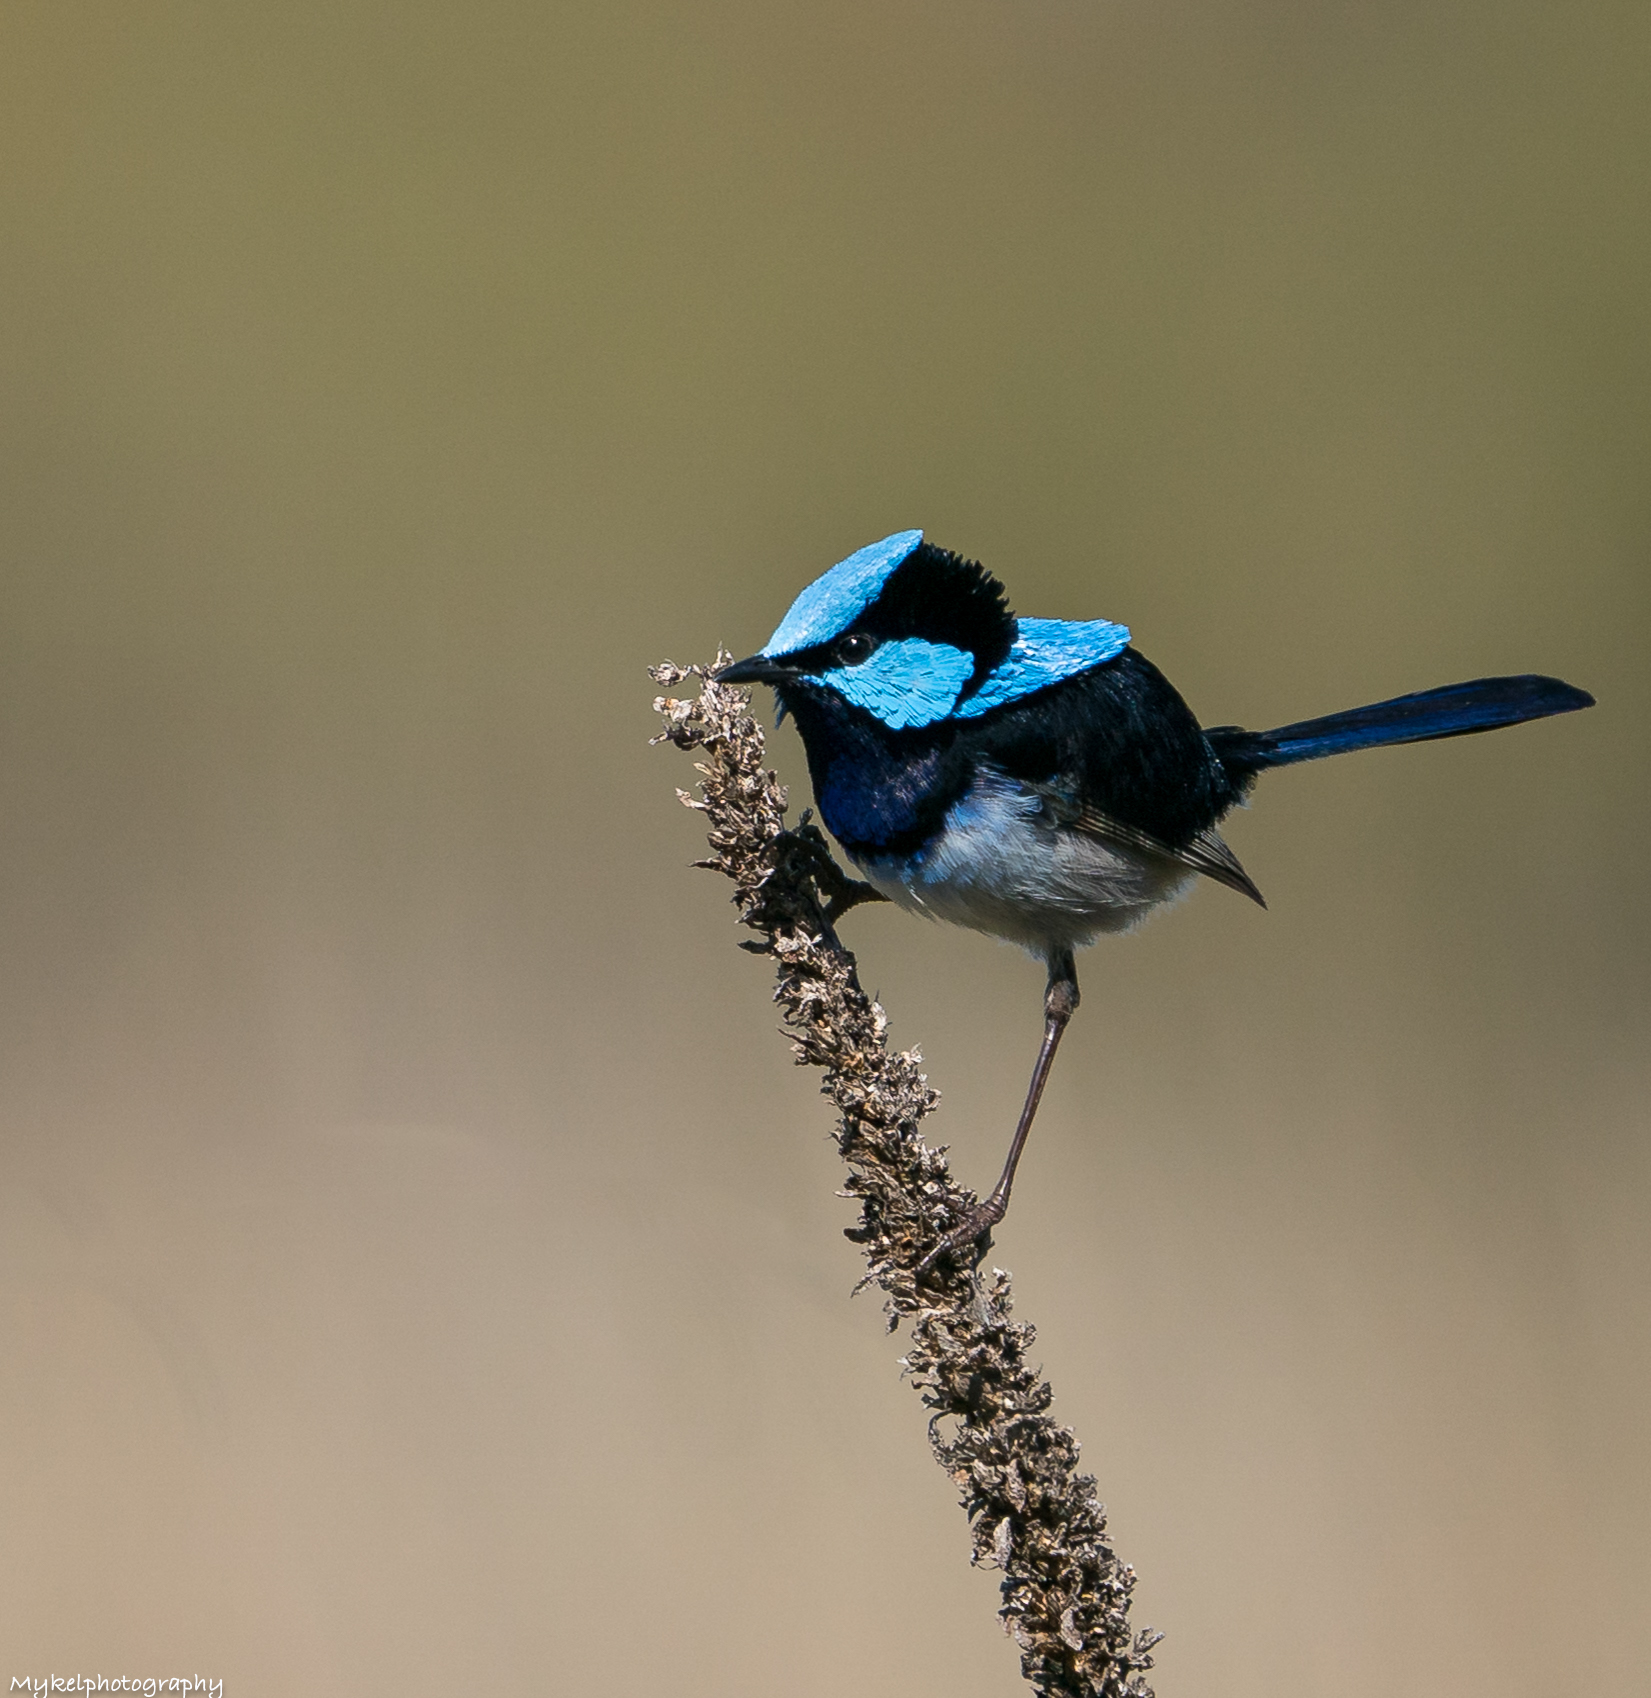 Male Superb Fairy-wren  Malurus cyaneus  Maluridae